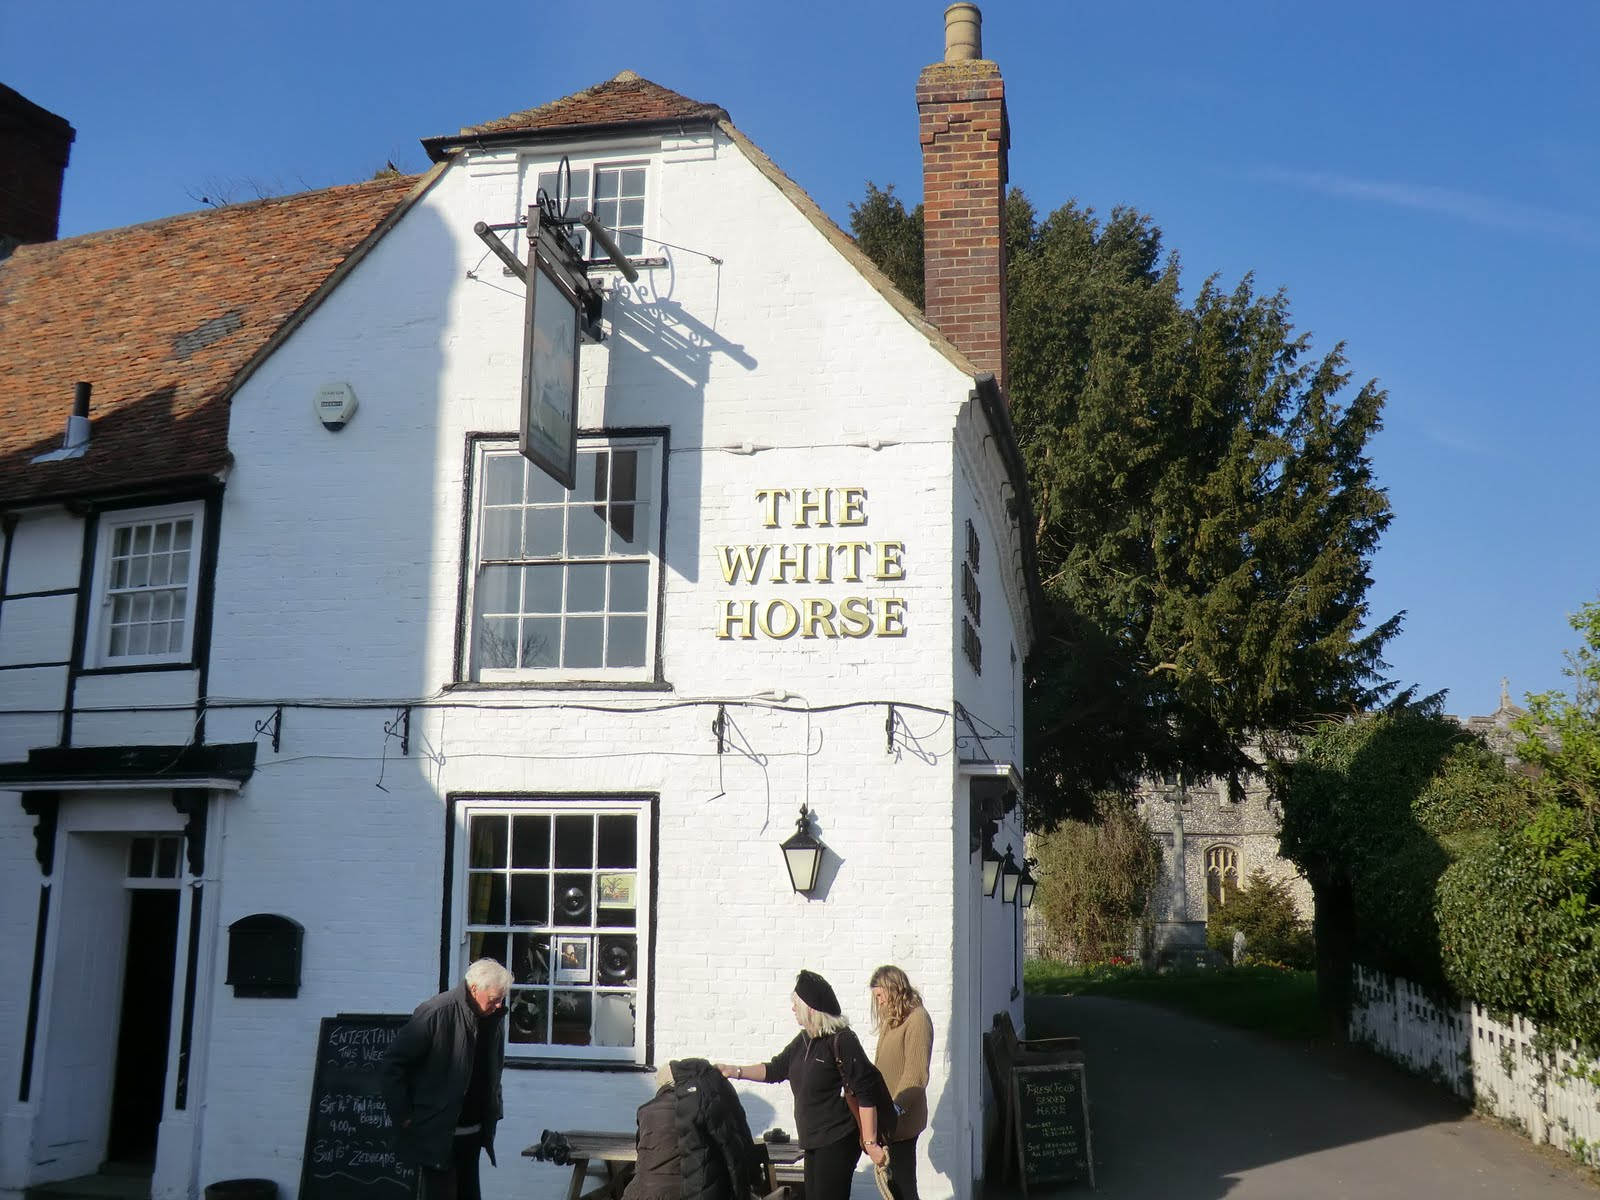 CIMG2564 The White Horse, Chilham